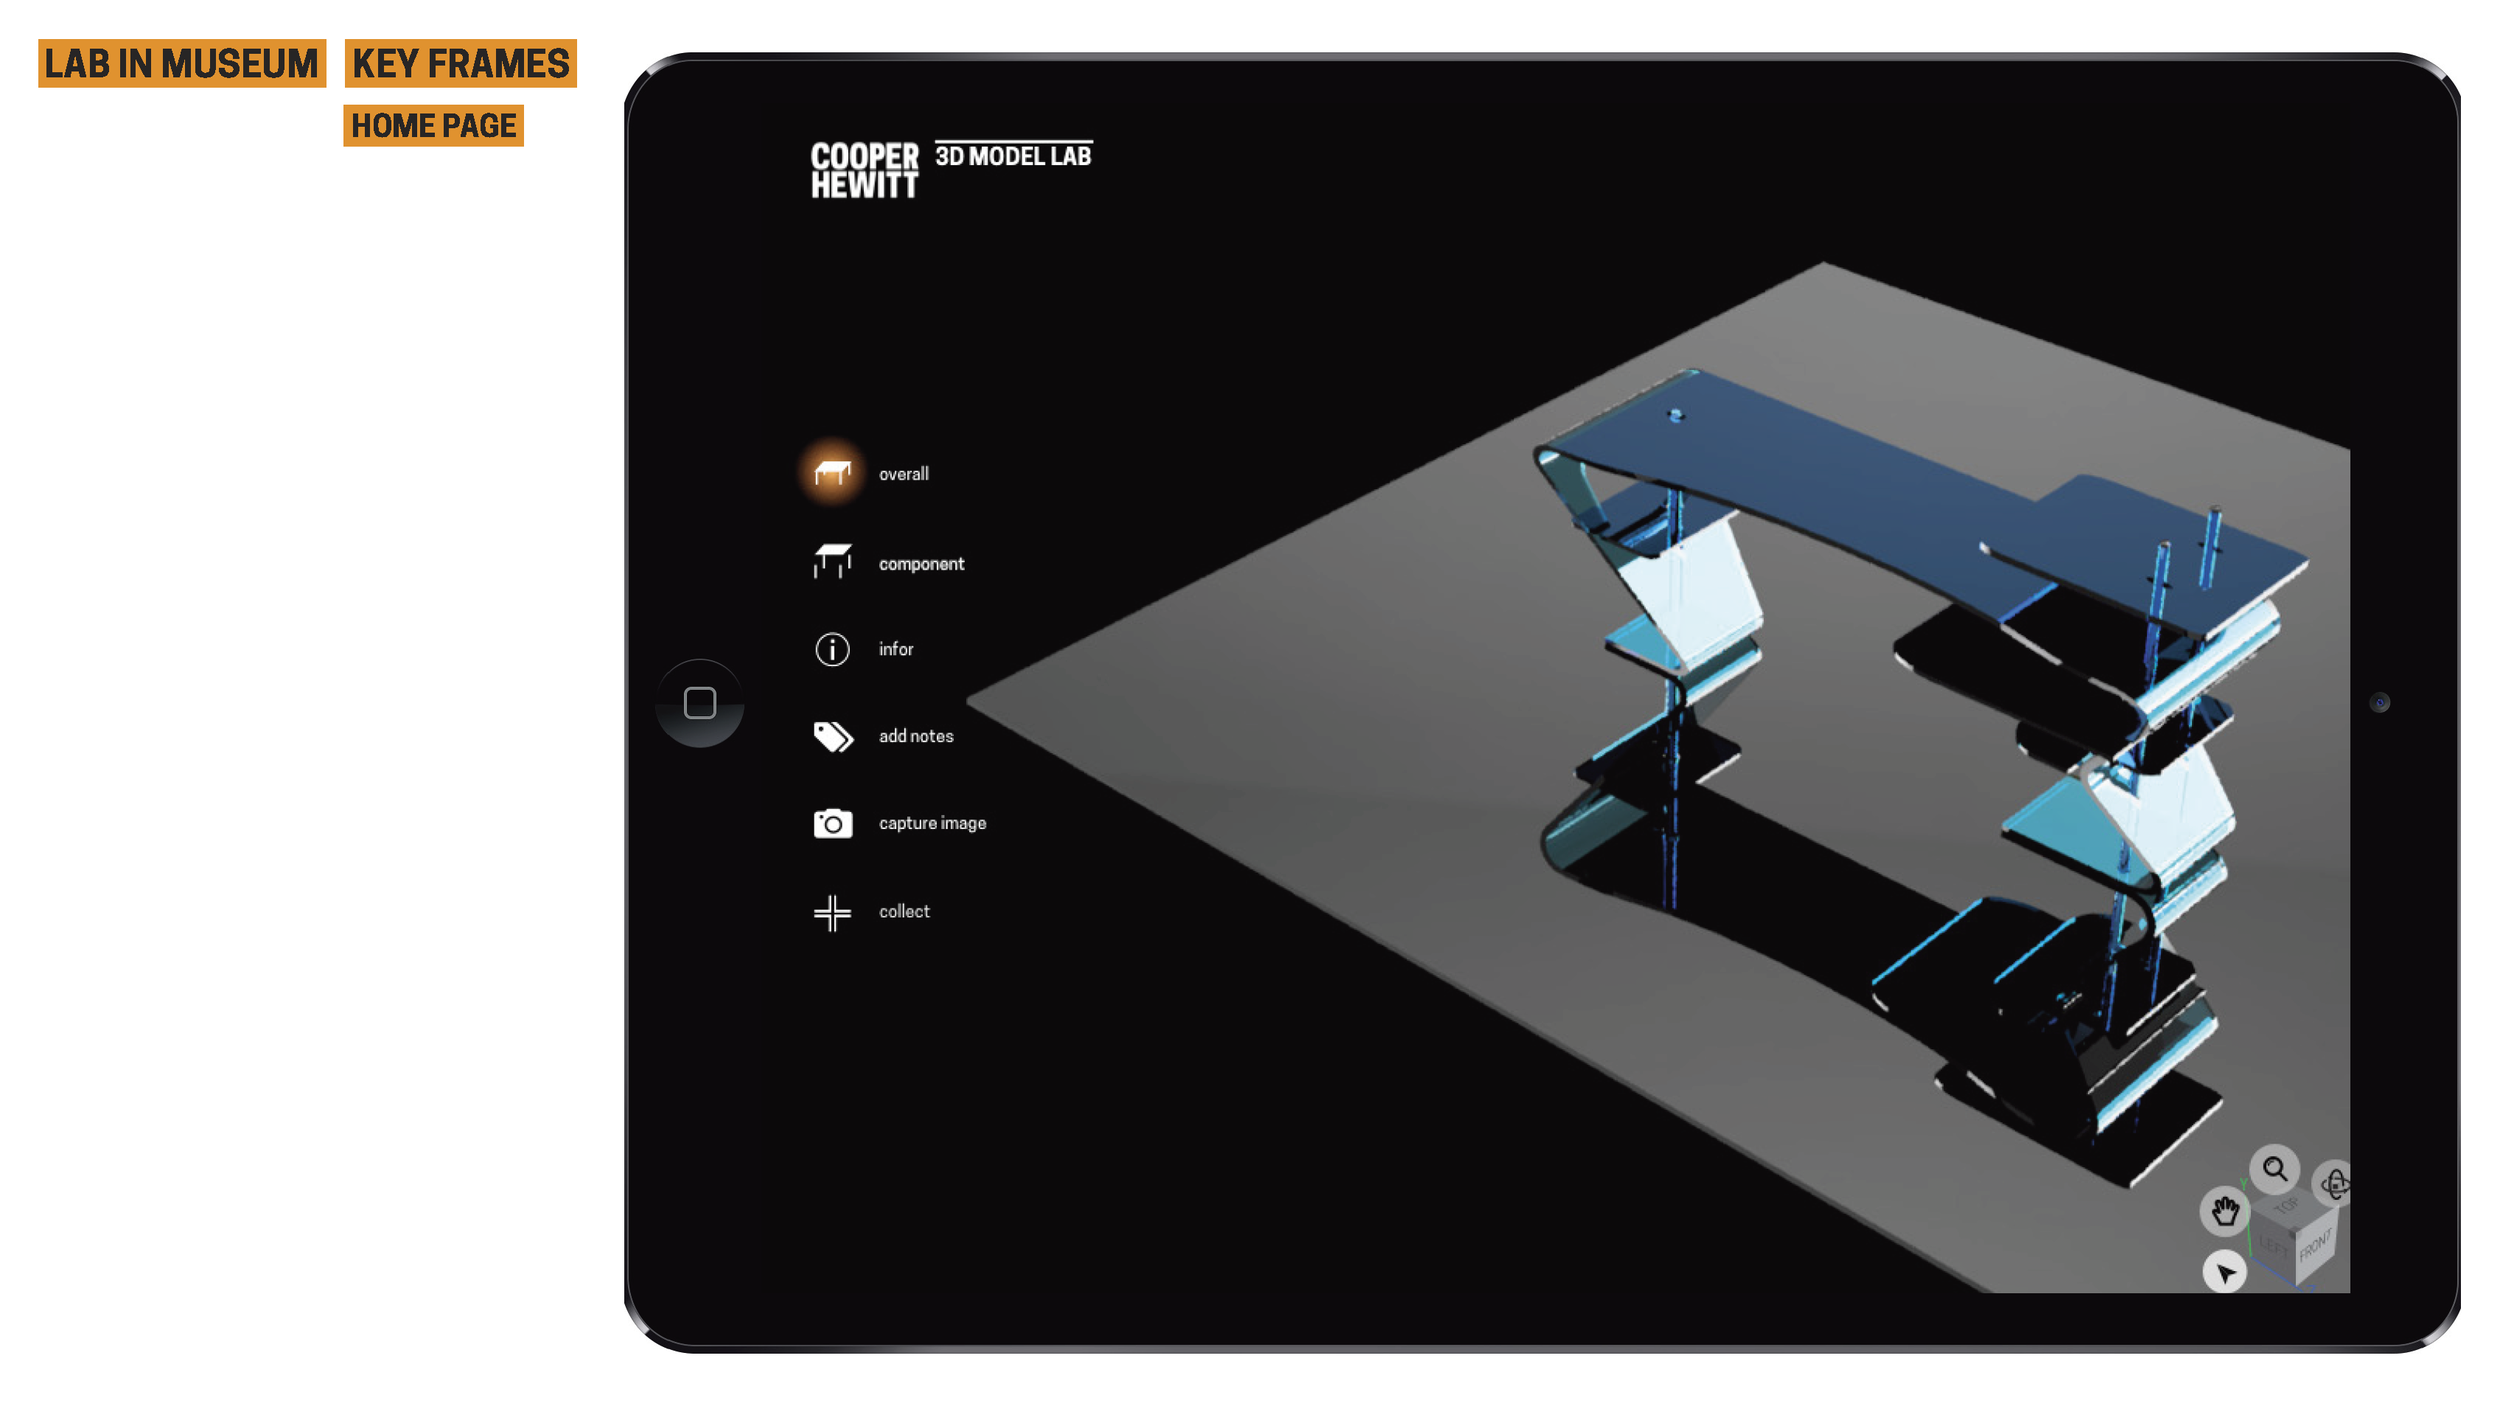 Overall Mode   In the overall mode, you can manipulate a 3D object. which aids in the processes of learning and understanding.